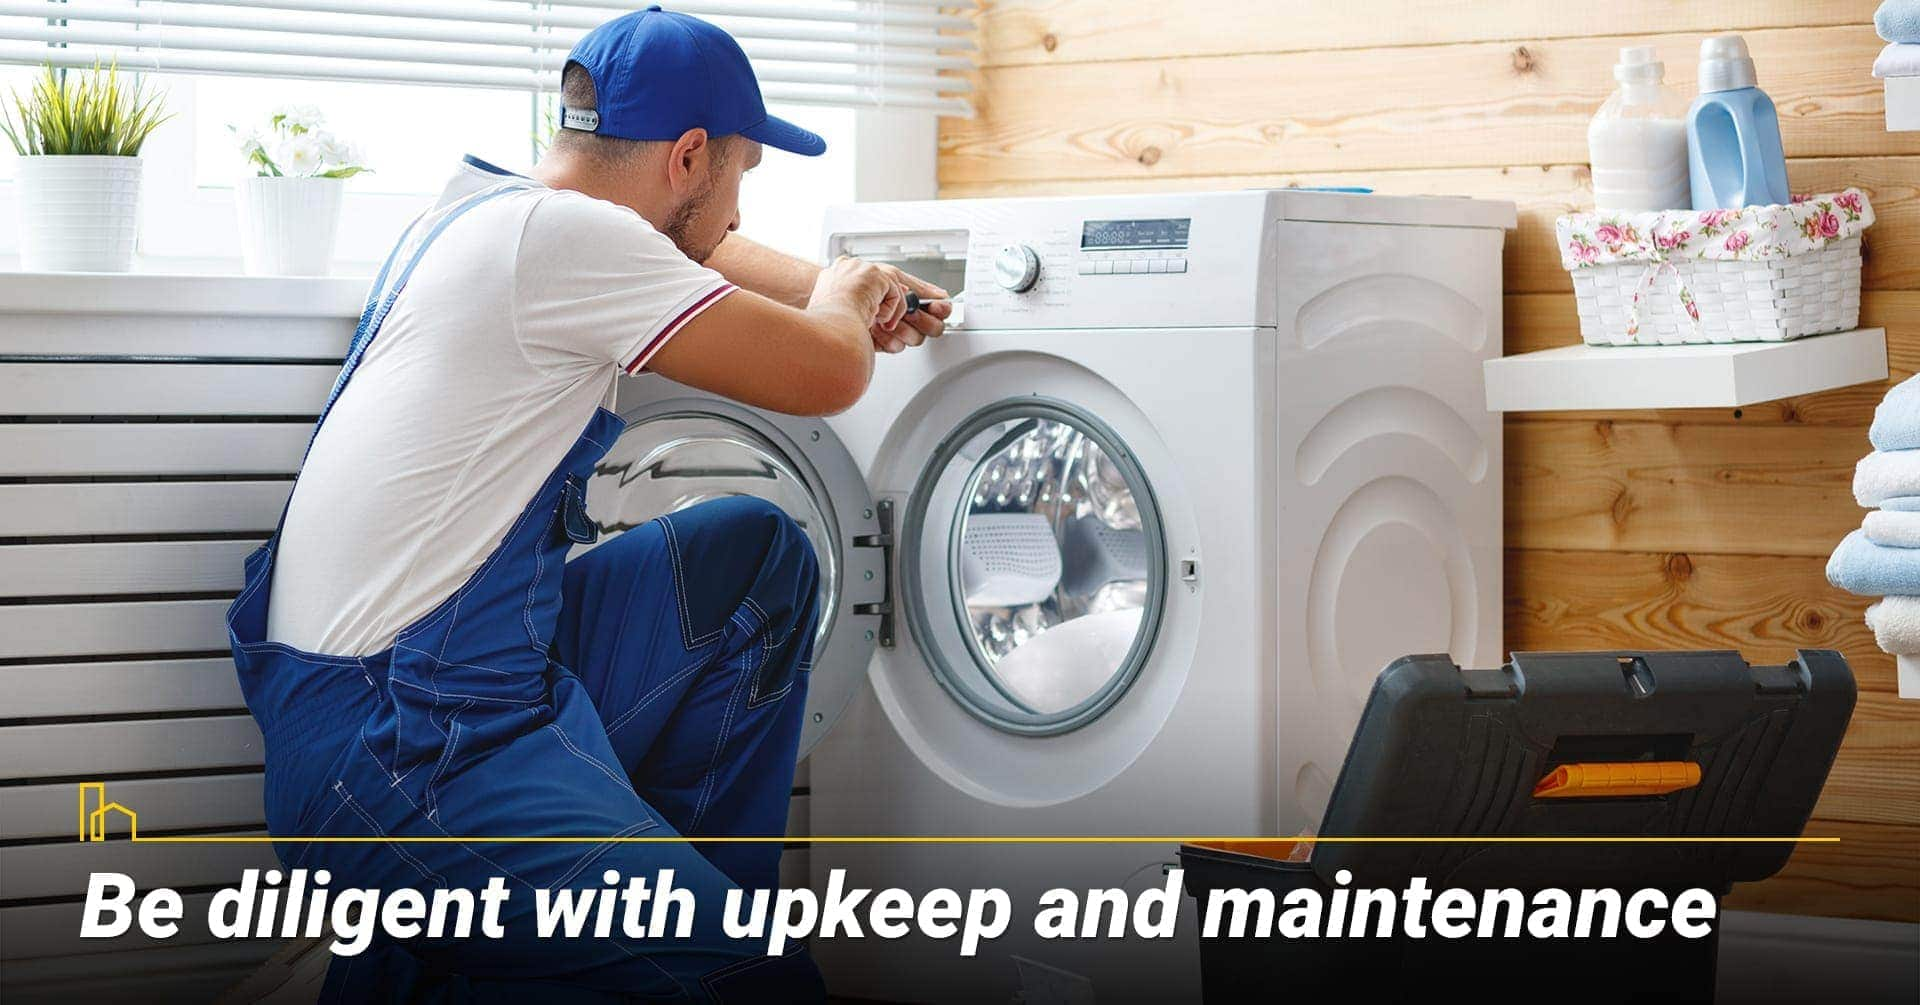 Be diligent with upkeep and maintenance, keep your property at its top shape